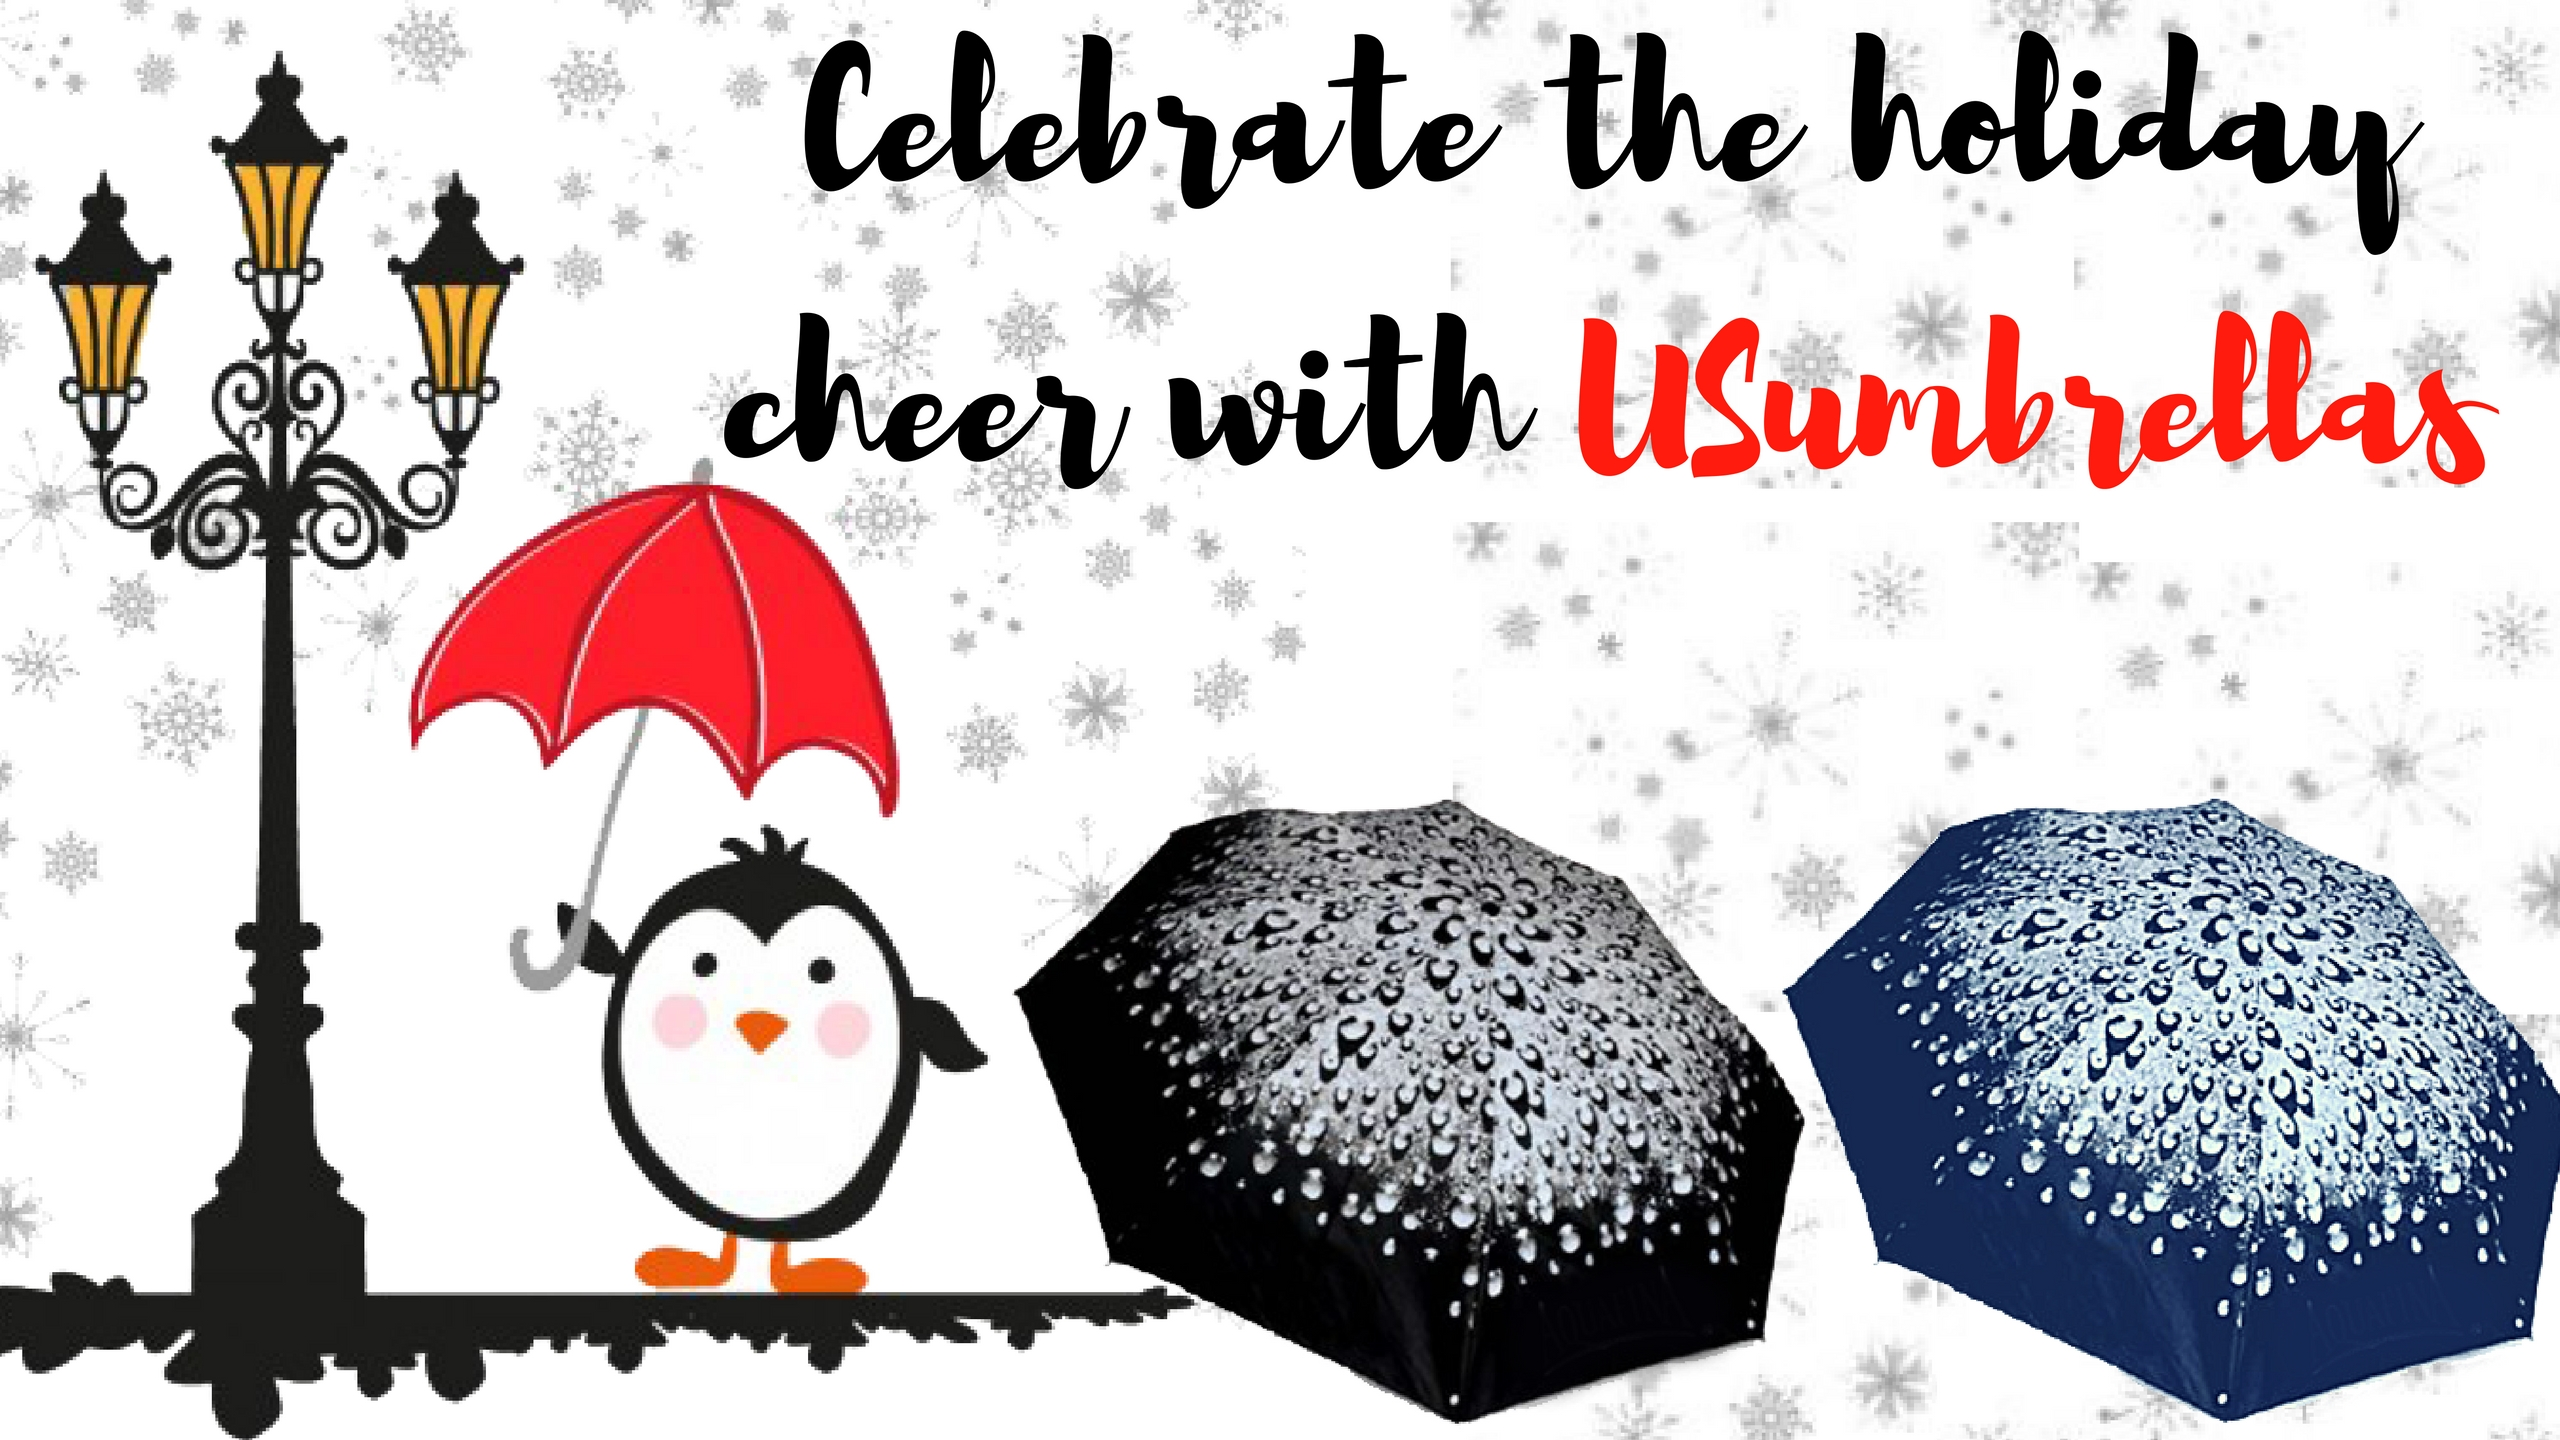 celebrate-the-holiday-cheer-with-custom-umbrellas